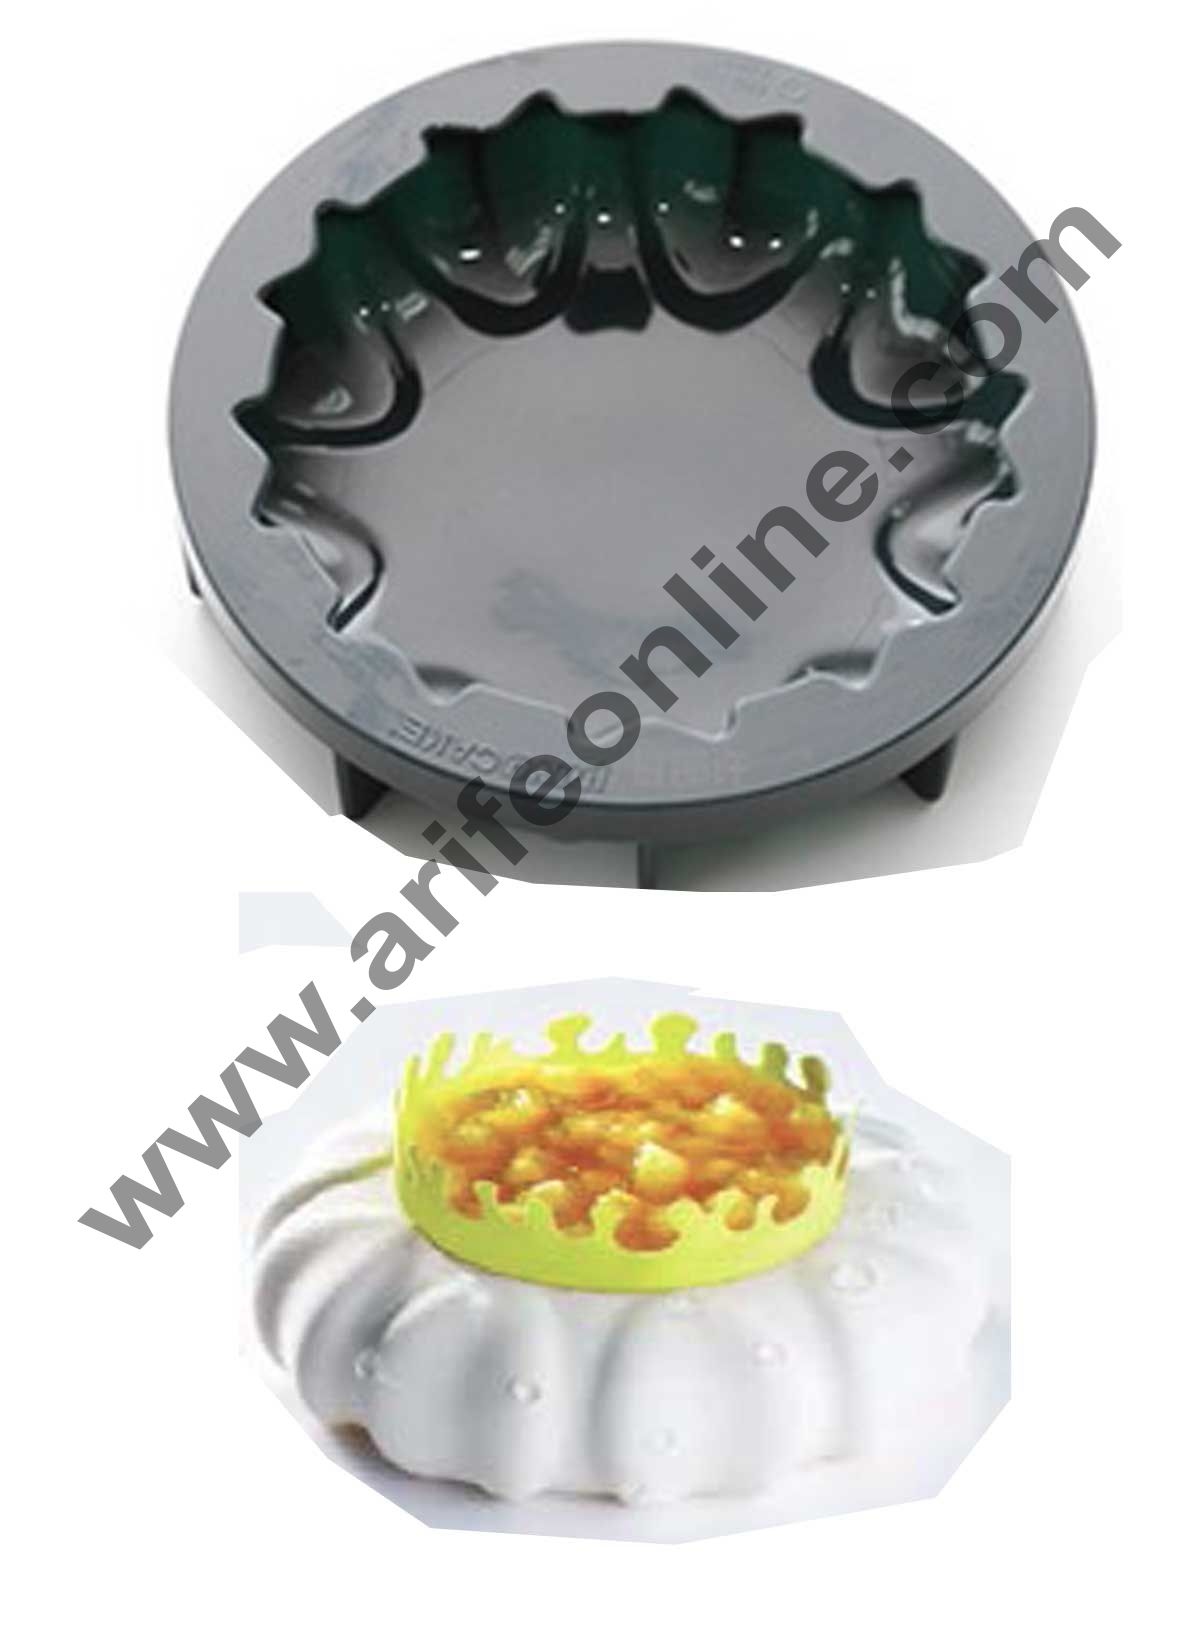 Cake Decor Silicon Petal Design Cake Mould Mousse Cake Mould Silicon Moulds